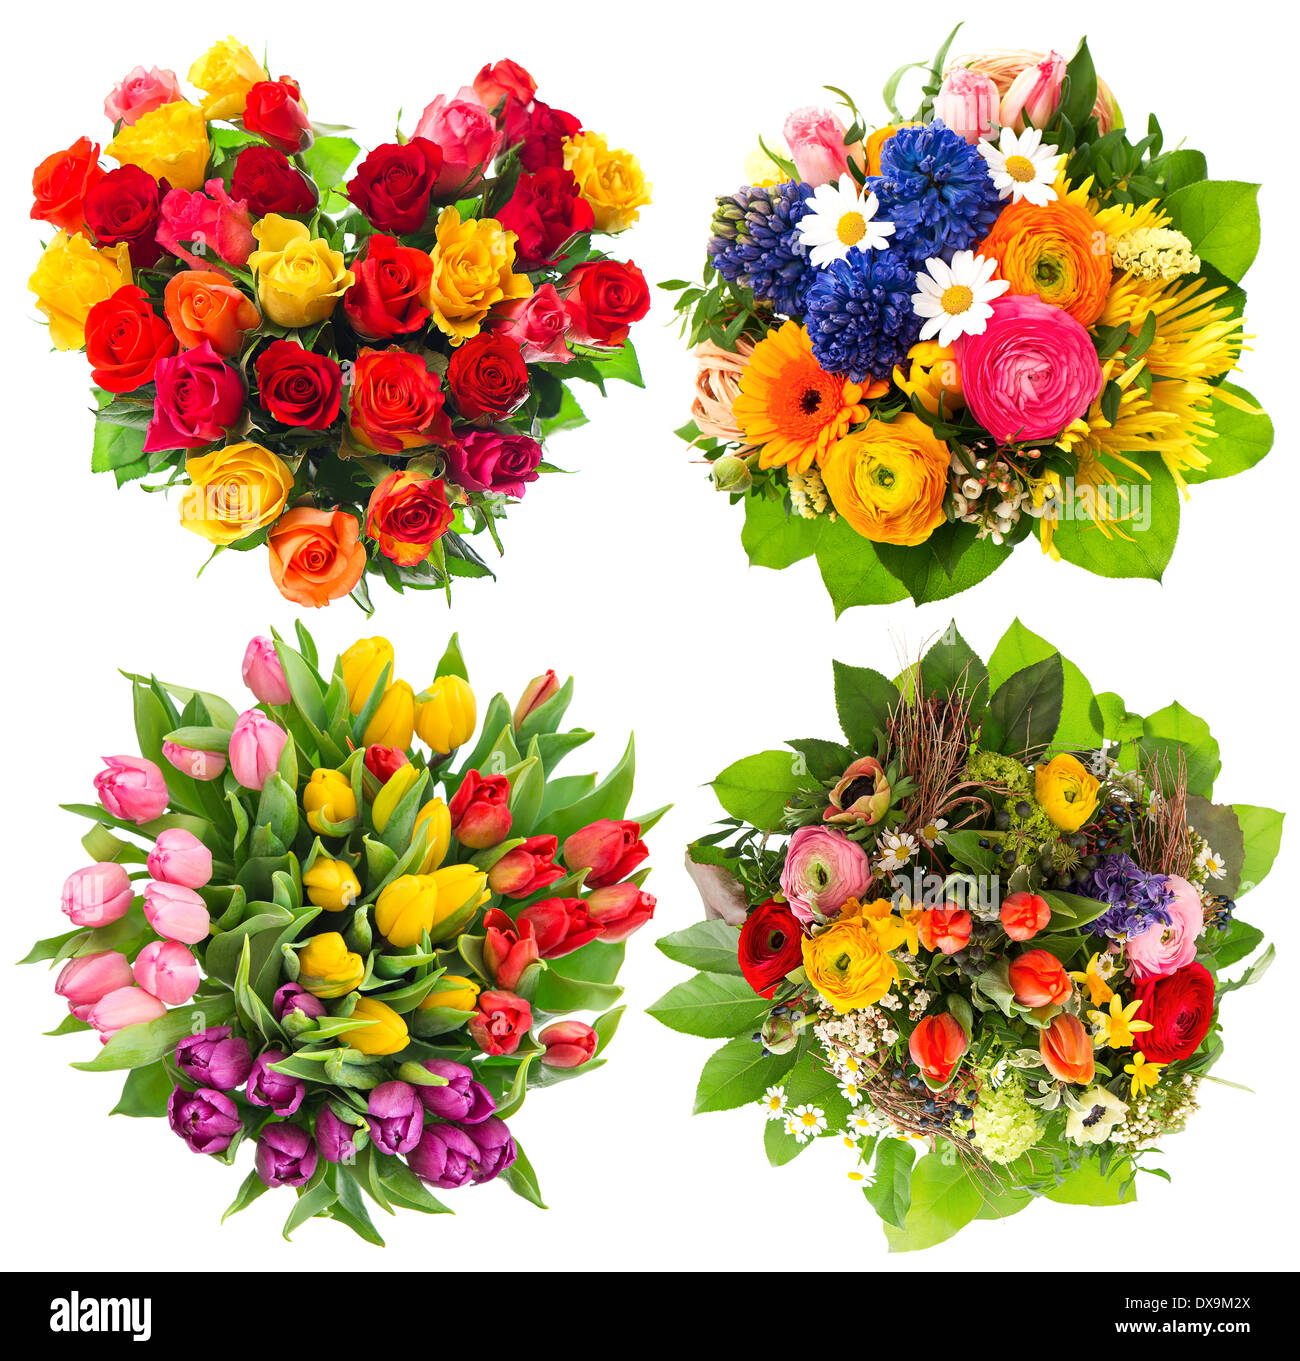 flower bouquets for Birthday, Valentines Day, Mothers Day, Easter ...